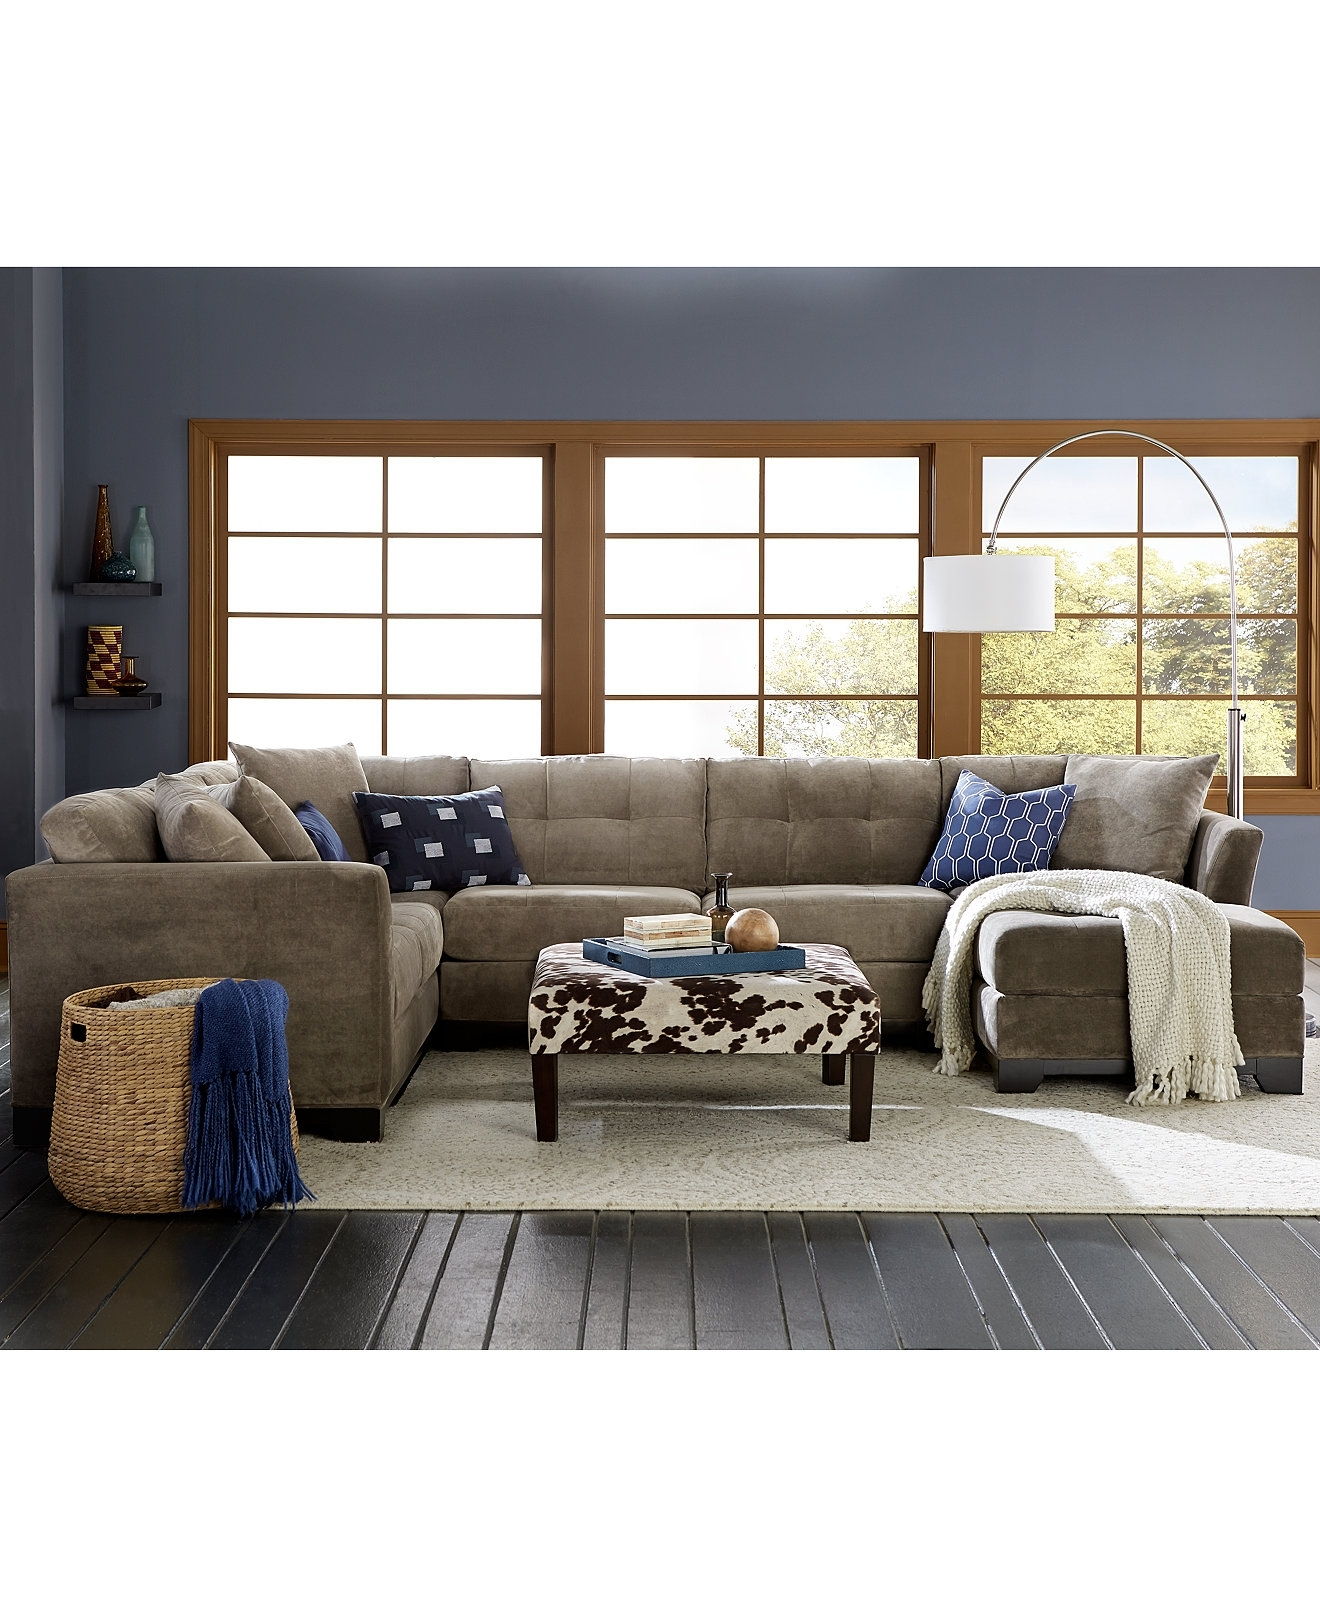 macy s elliot sofa crate and barrel lounge sleeper fabric sectional | awesome home